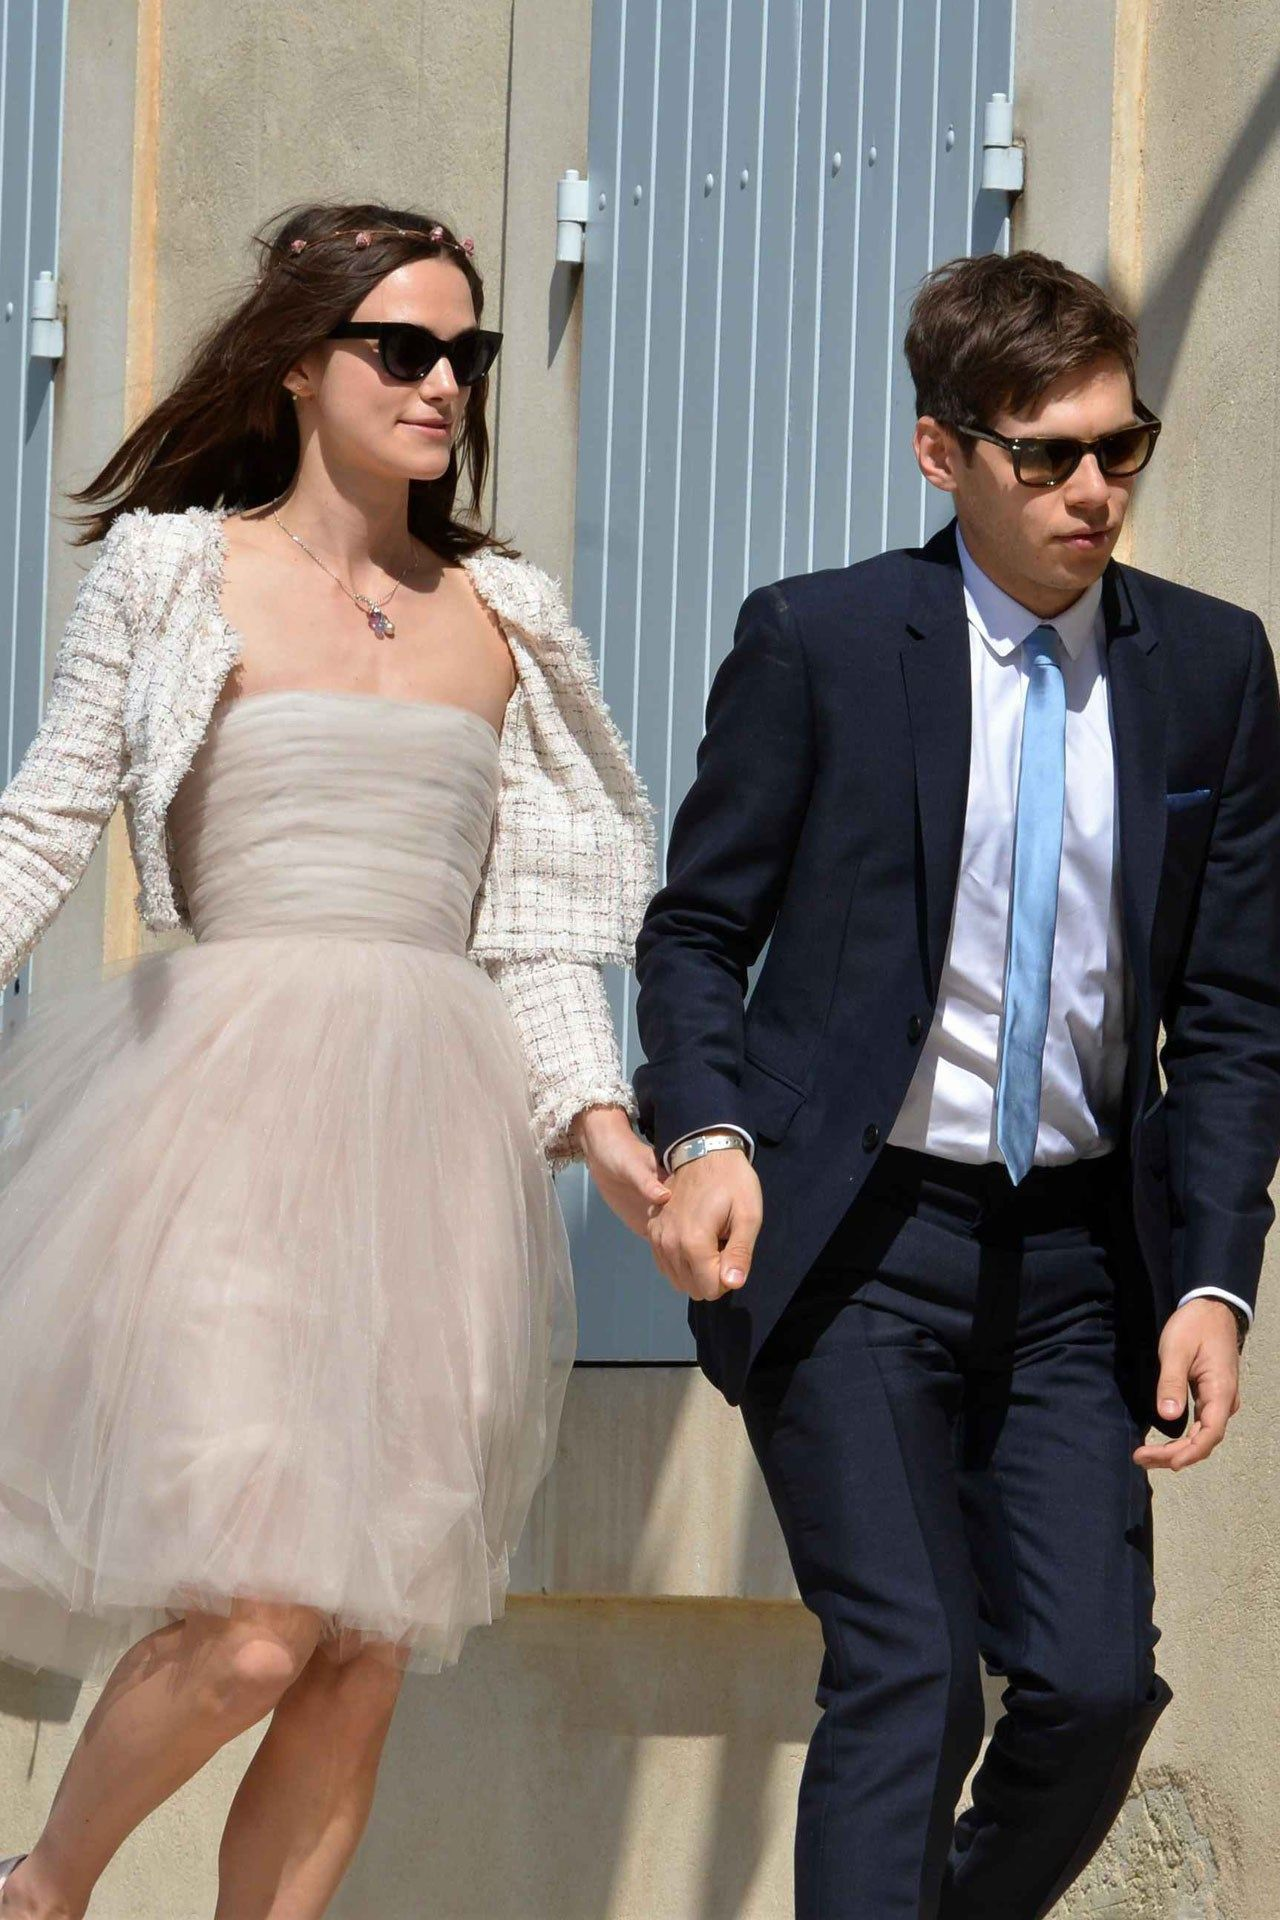 Forum on this topic: How Keira Knightley Destroyed Her Chanel Wedding , how-keira-knightley-destroyed-her-chanel-wedding/